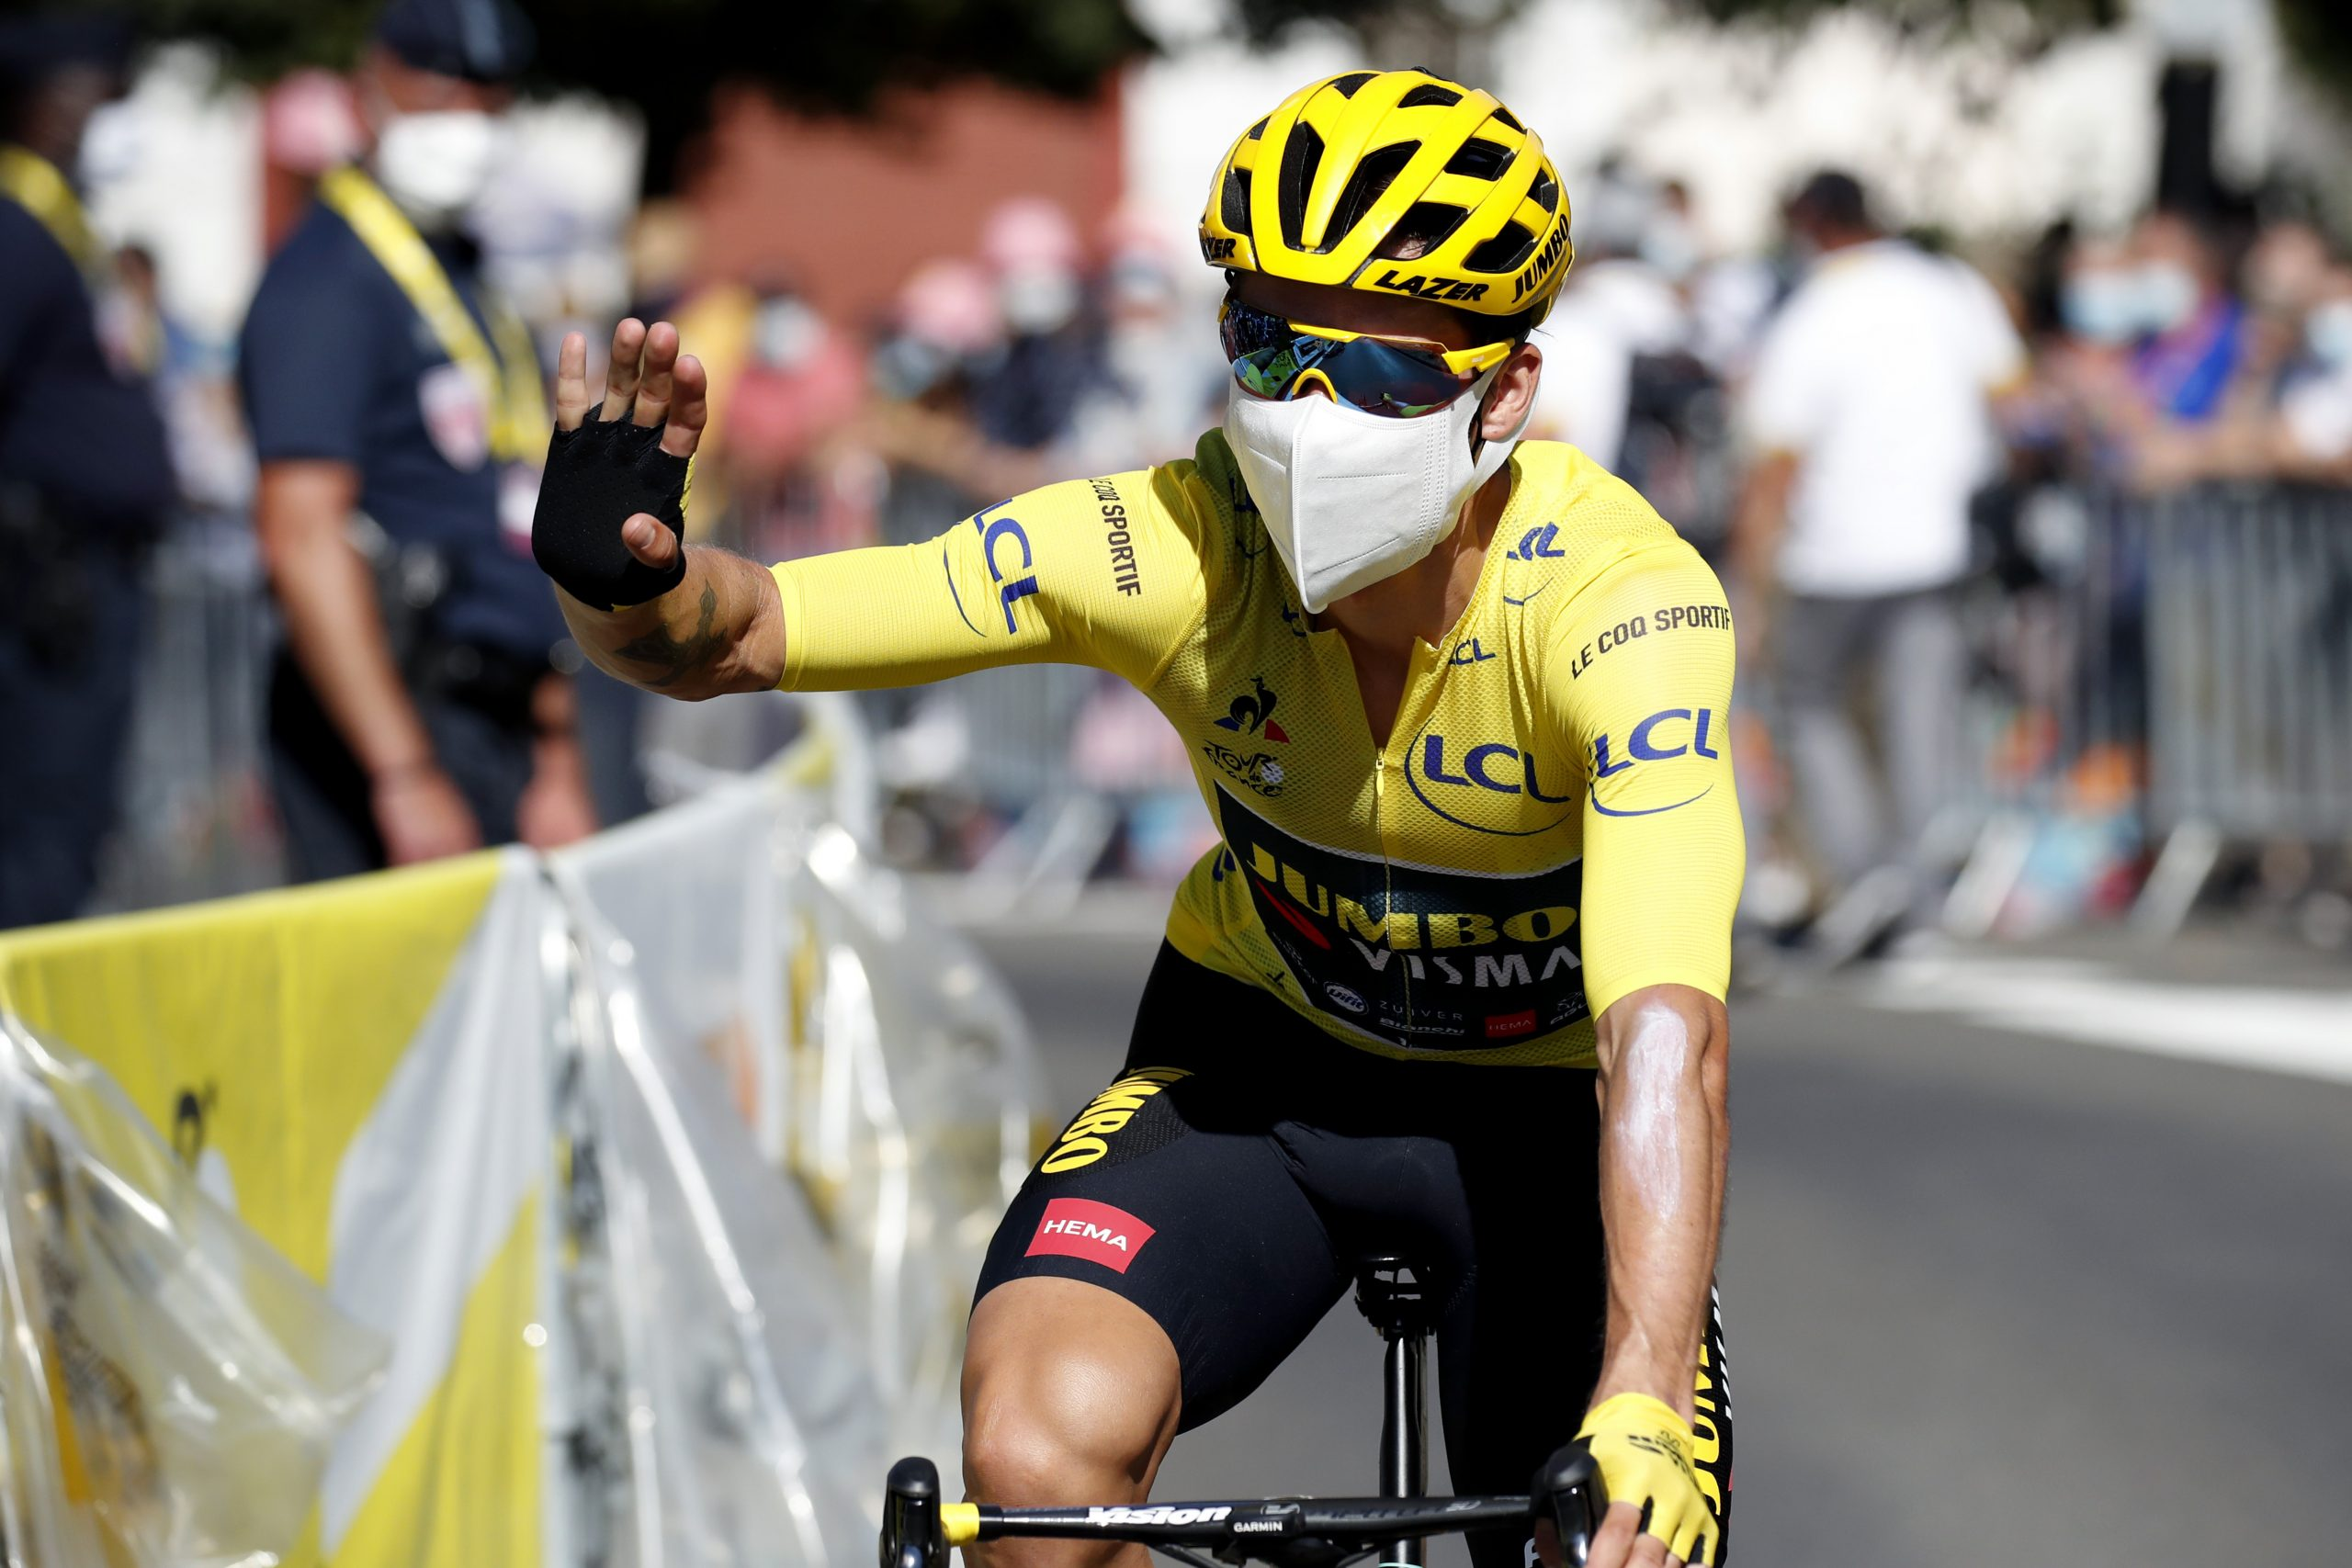 Roglic Imperial On Tour De France Stage 13 Won By Martinez Outlaw 103 1